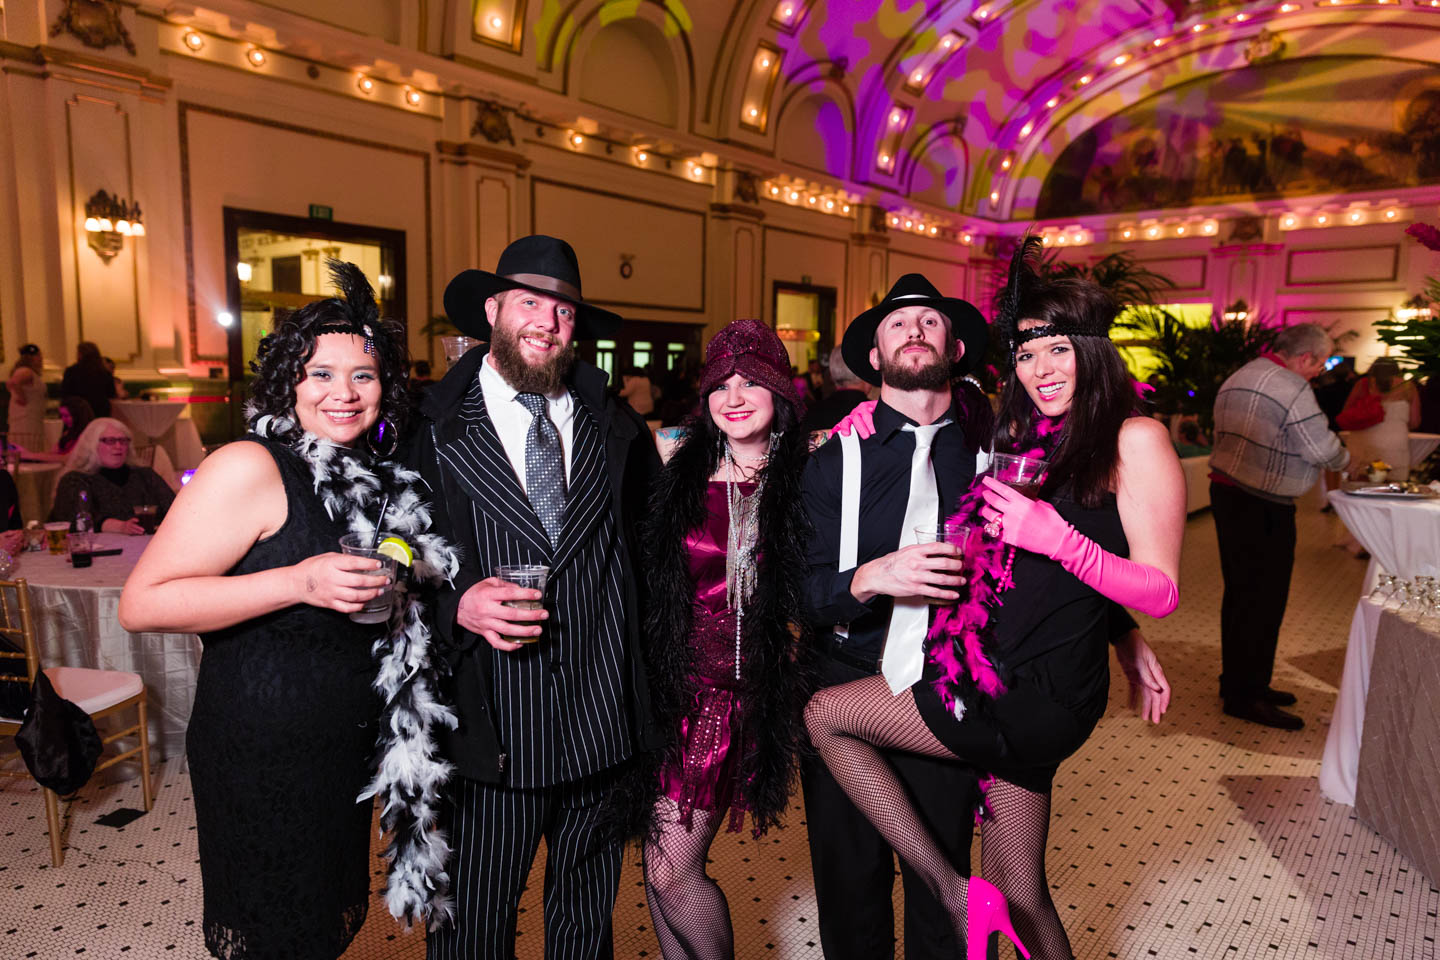 The Great Gatsby Themed Party At The Gateway S Grand Hall